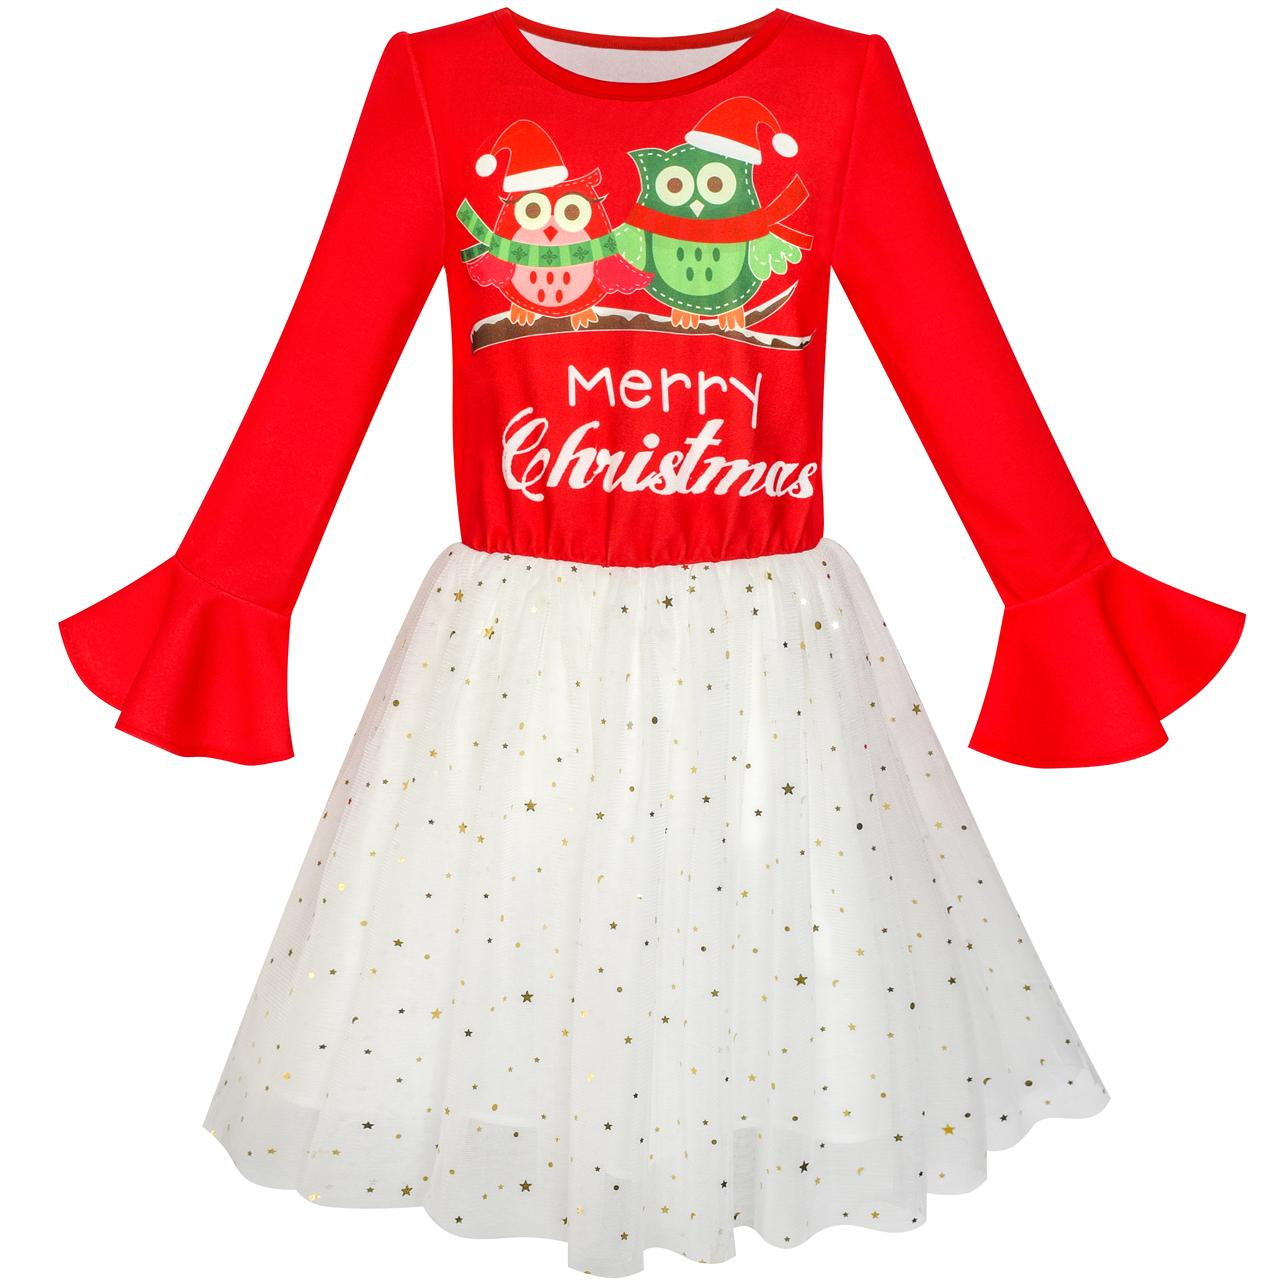 Girls Dress Long Sleeve Christmas Owl Sparkling Sequin Tulle 2018 Summer Princess Wedding Party Dresses Size 5-12Girls Dress Long Sleeve Christmas Owl Sparkling Sequin Tulle 2018 Summer Princess Wedding Party Dresses Size 5-12